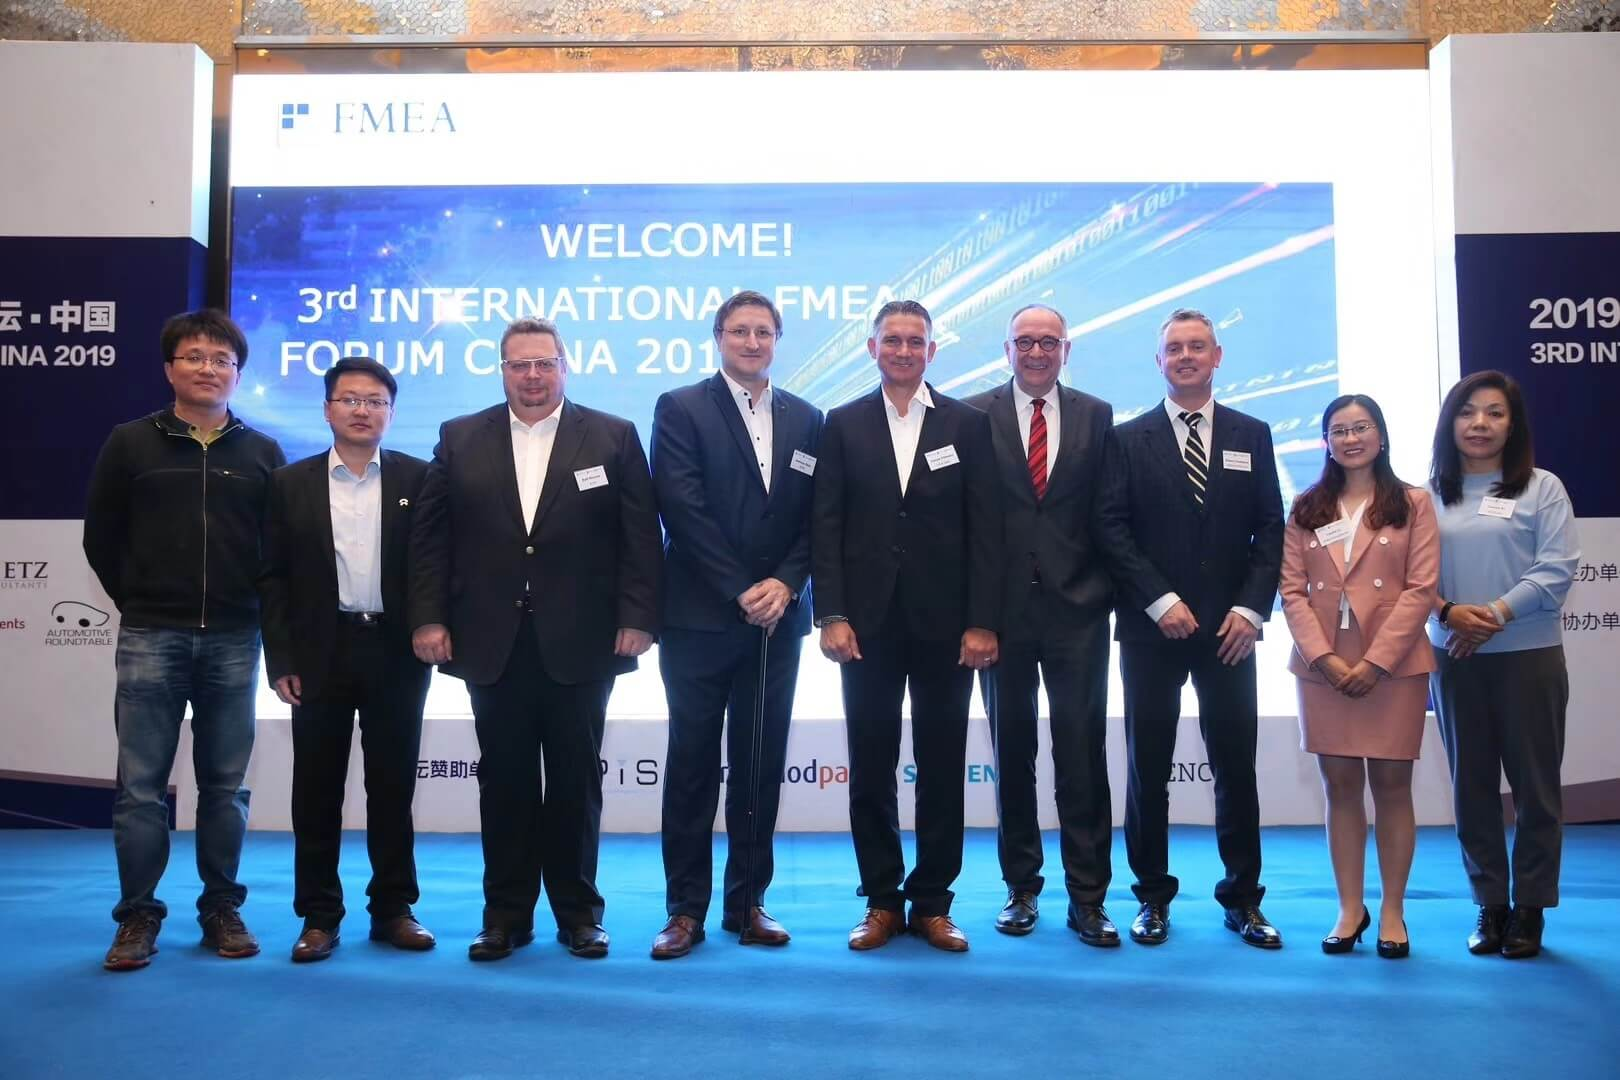 Speakers at the 3rd International FMEA Forum China 2019